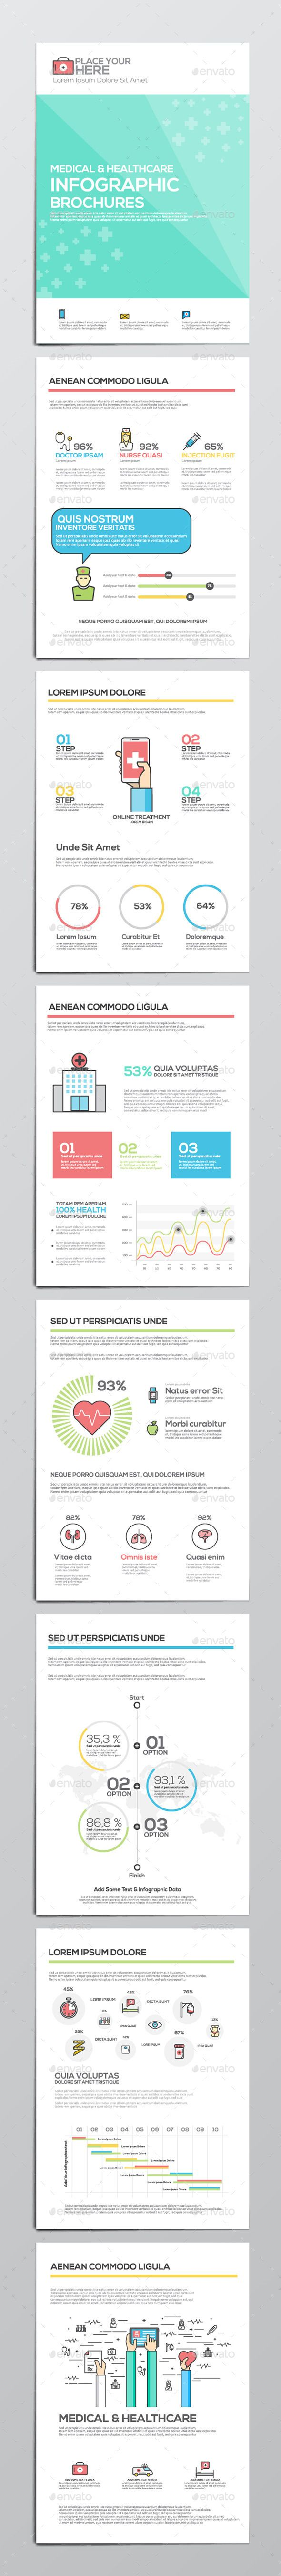 Medical and Healthcare Infographics Elements Template for Corporate Brochures #design Download: http://graphicriver.net/item/medical-and-healthcare-infographics/13079616?ref=ksioks